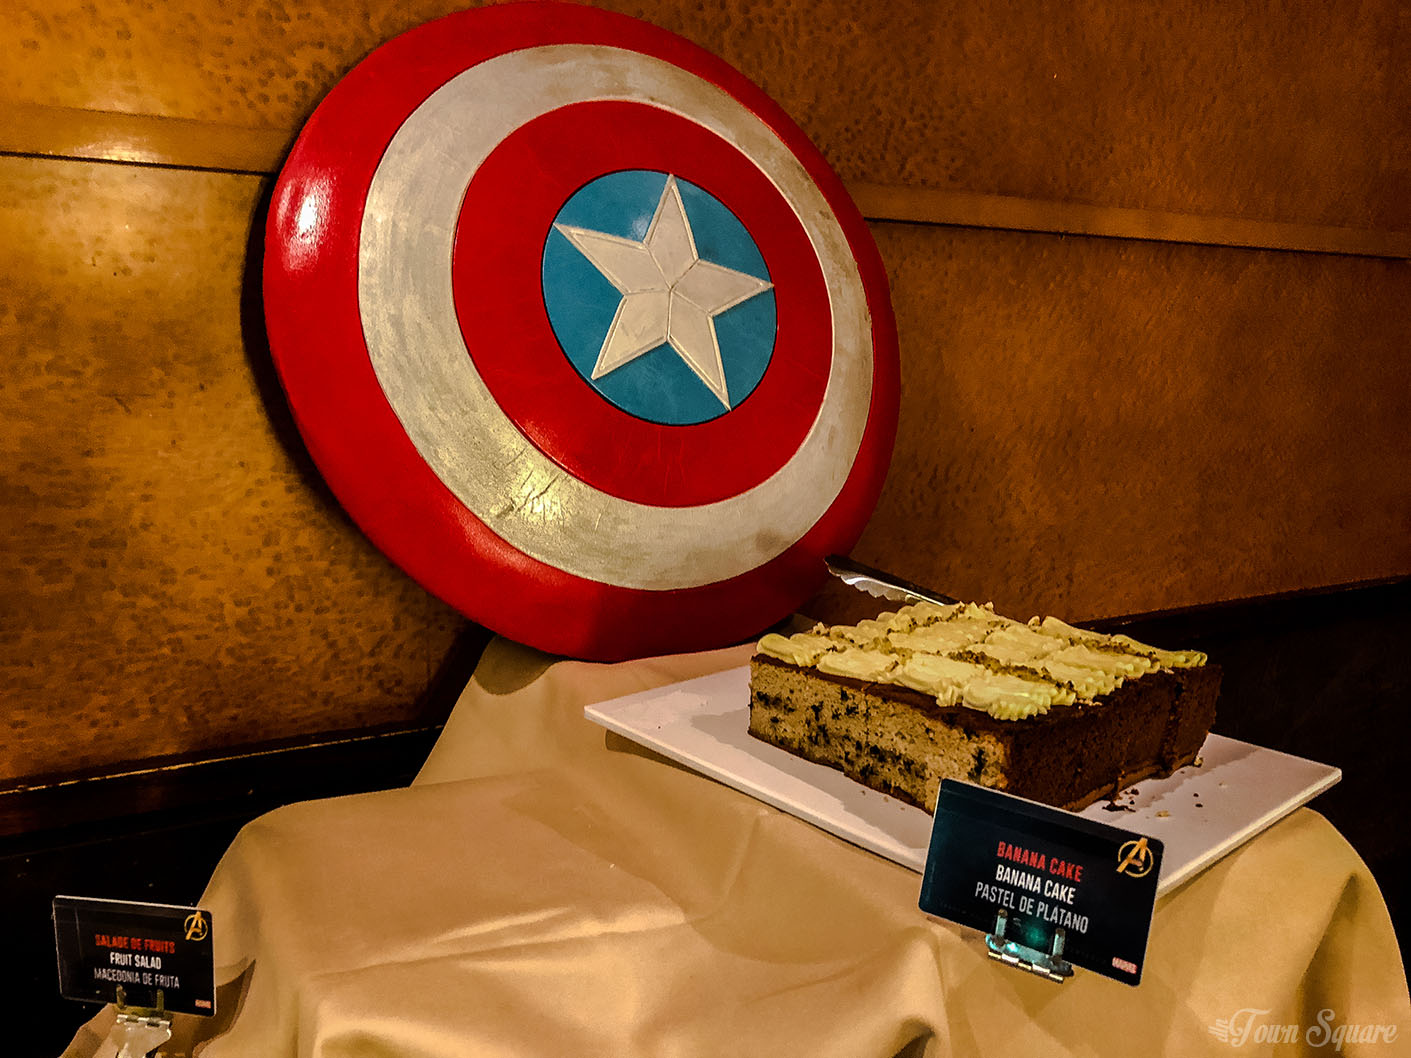 Marvel Signature Meal at Disneyland Paris - Cake